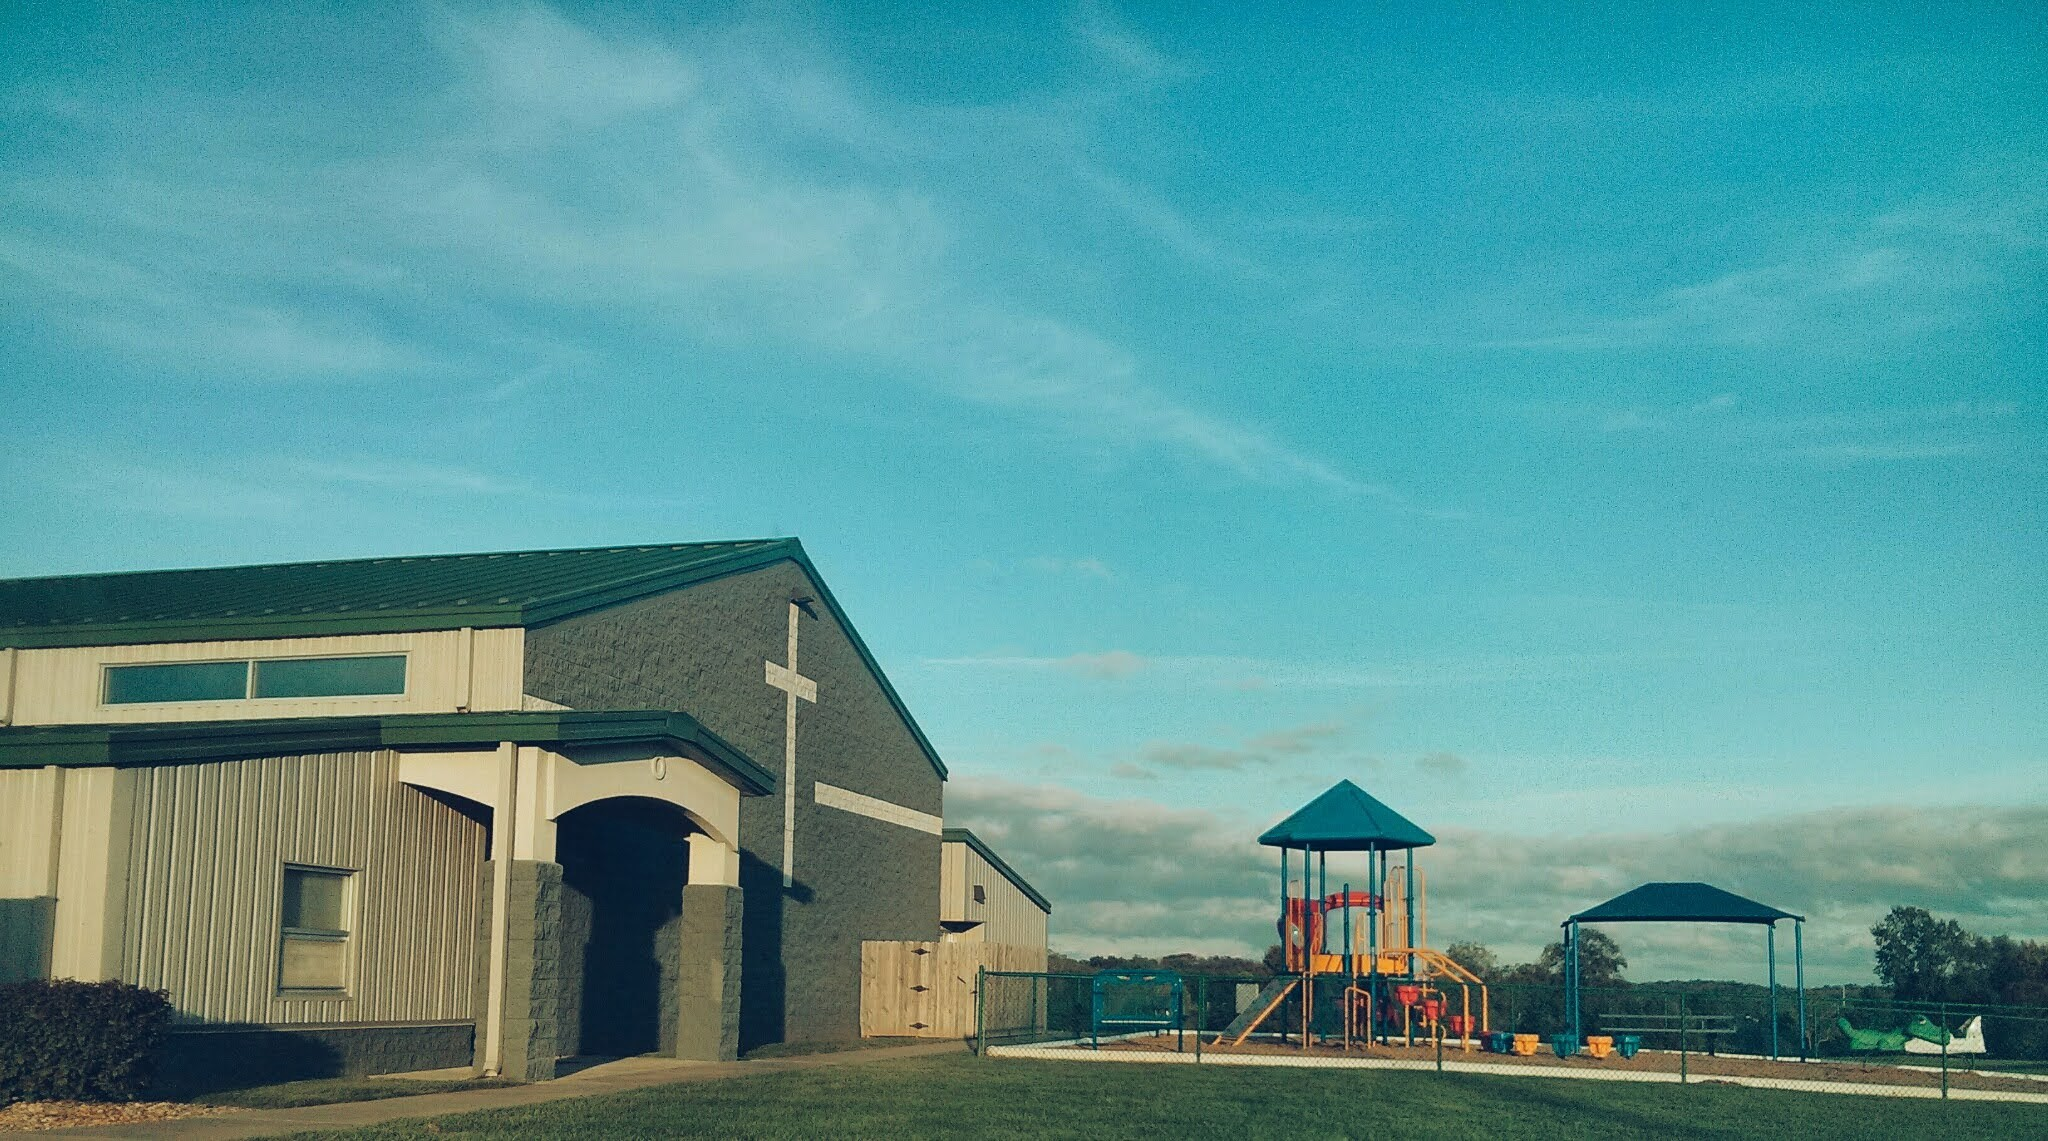 a church building with a playground